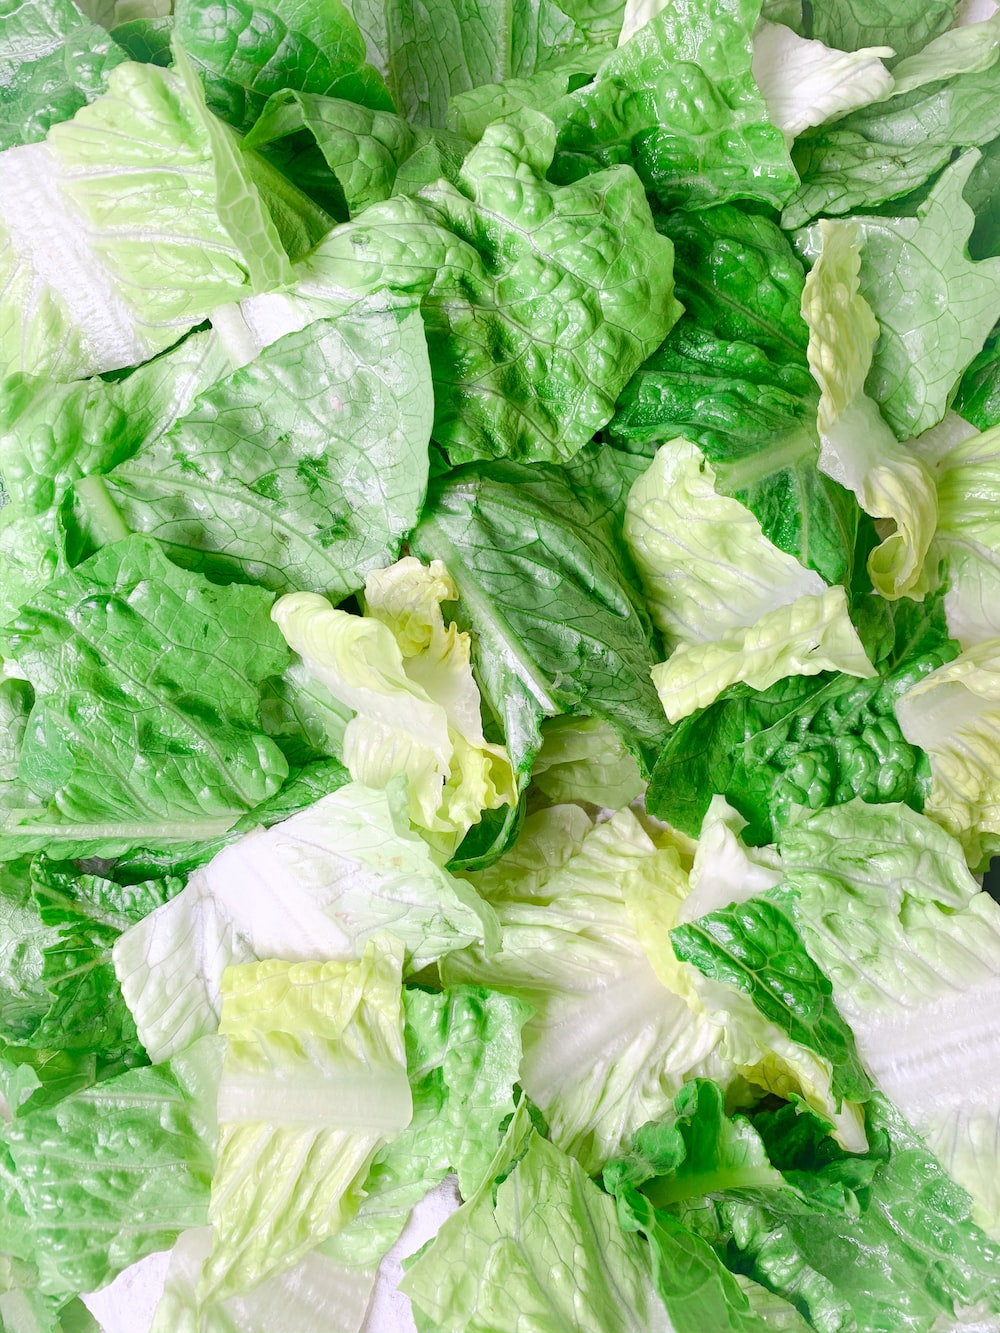 green and white cabbage vegetable